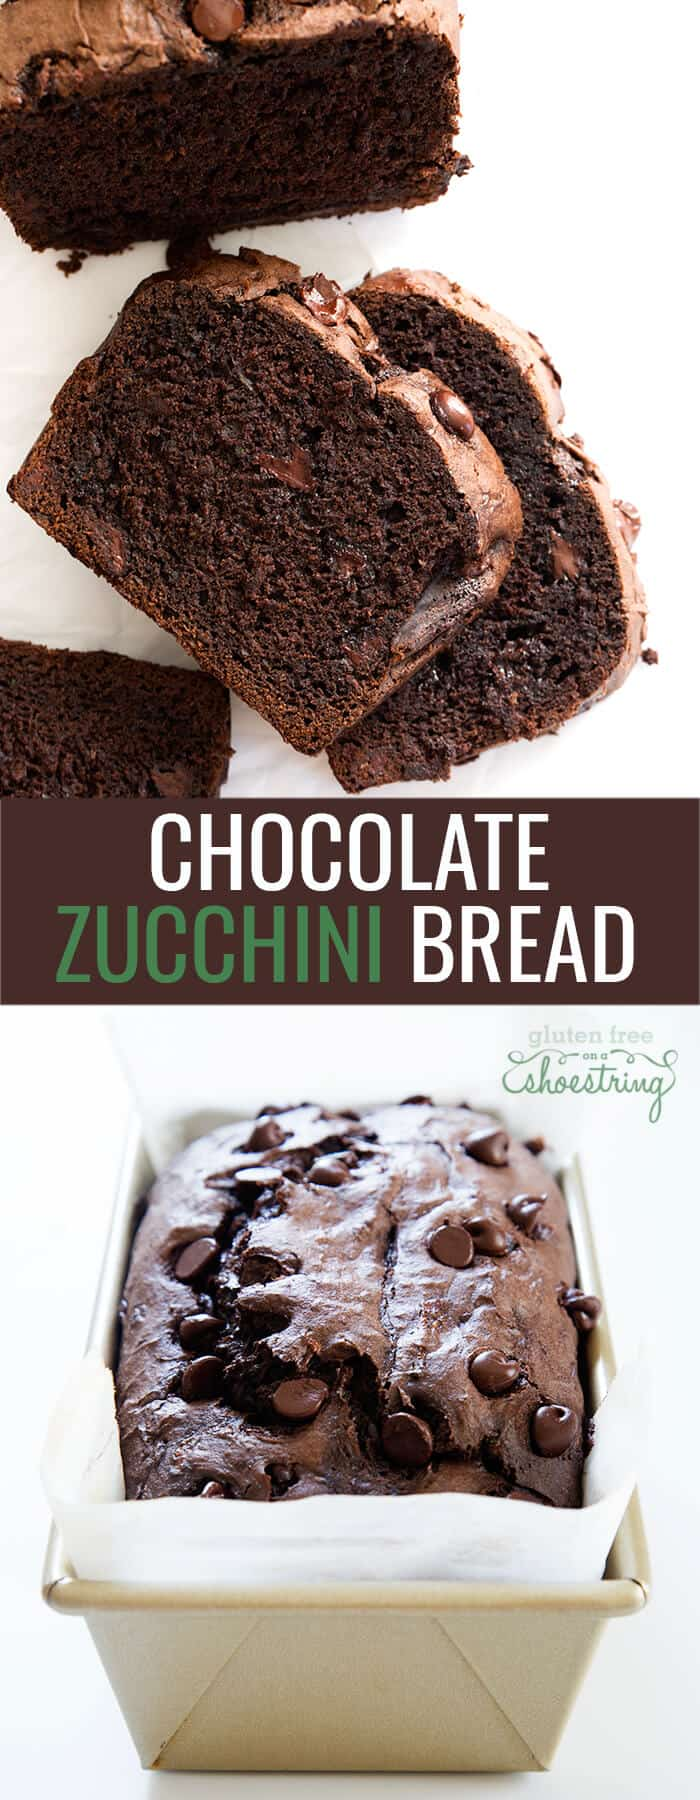 3 slices of chocolate zucchini bread on white surface and chocolate zucchini bread in a loaf pan